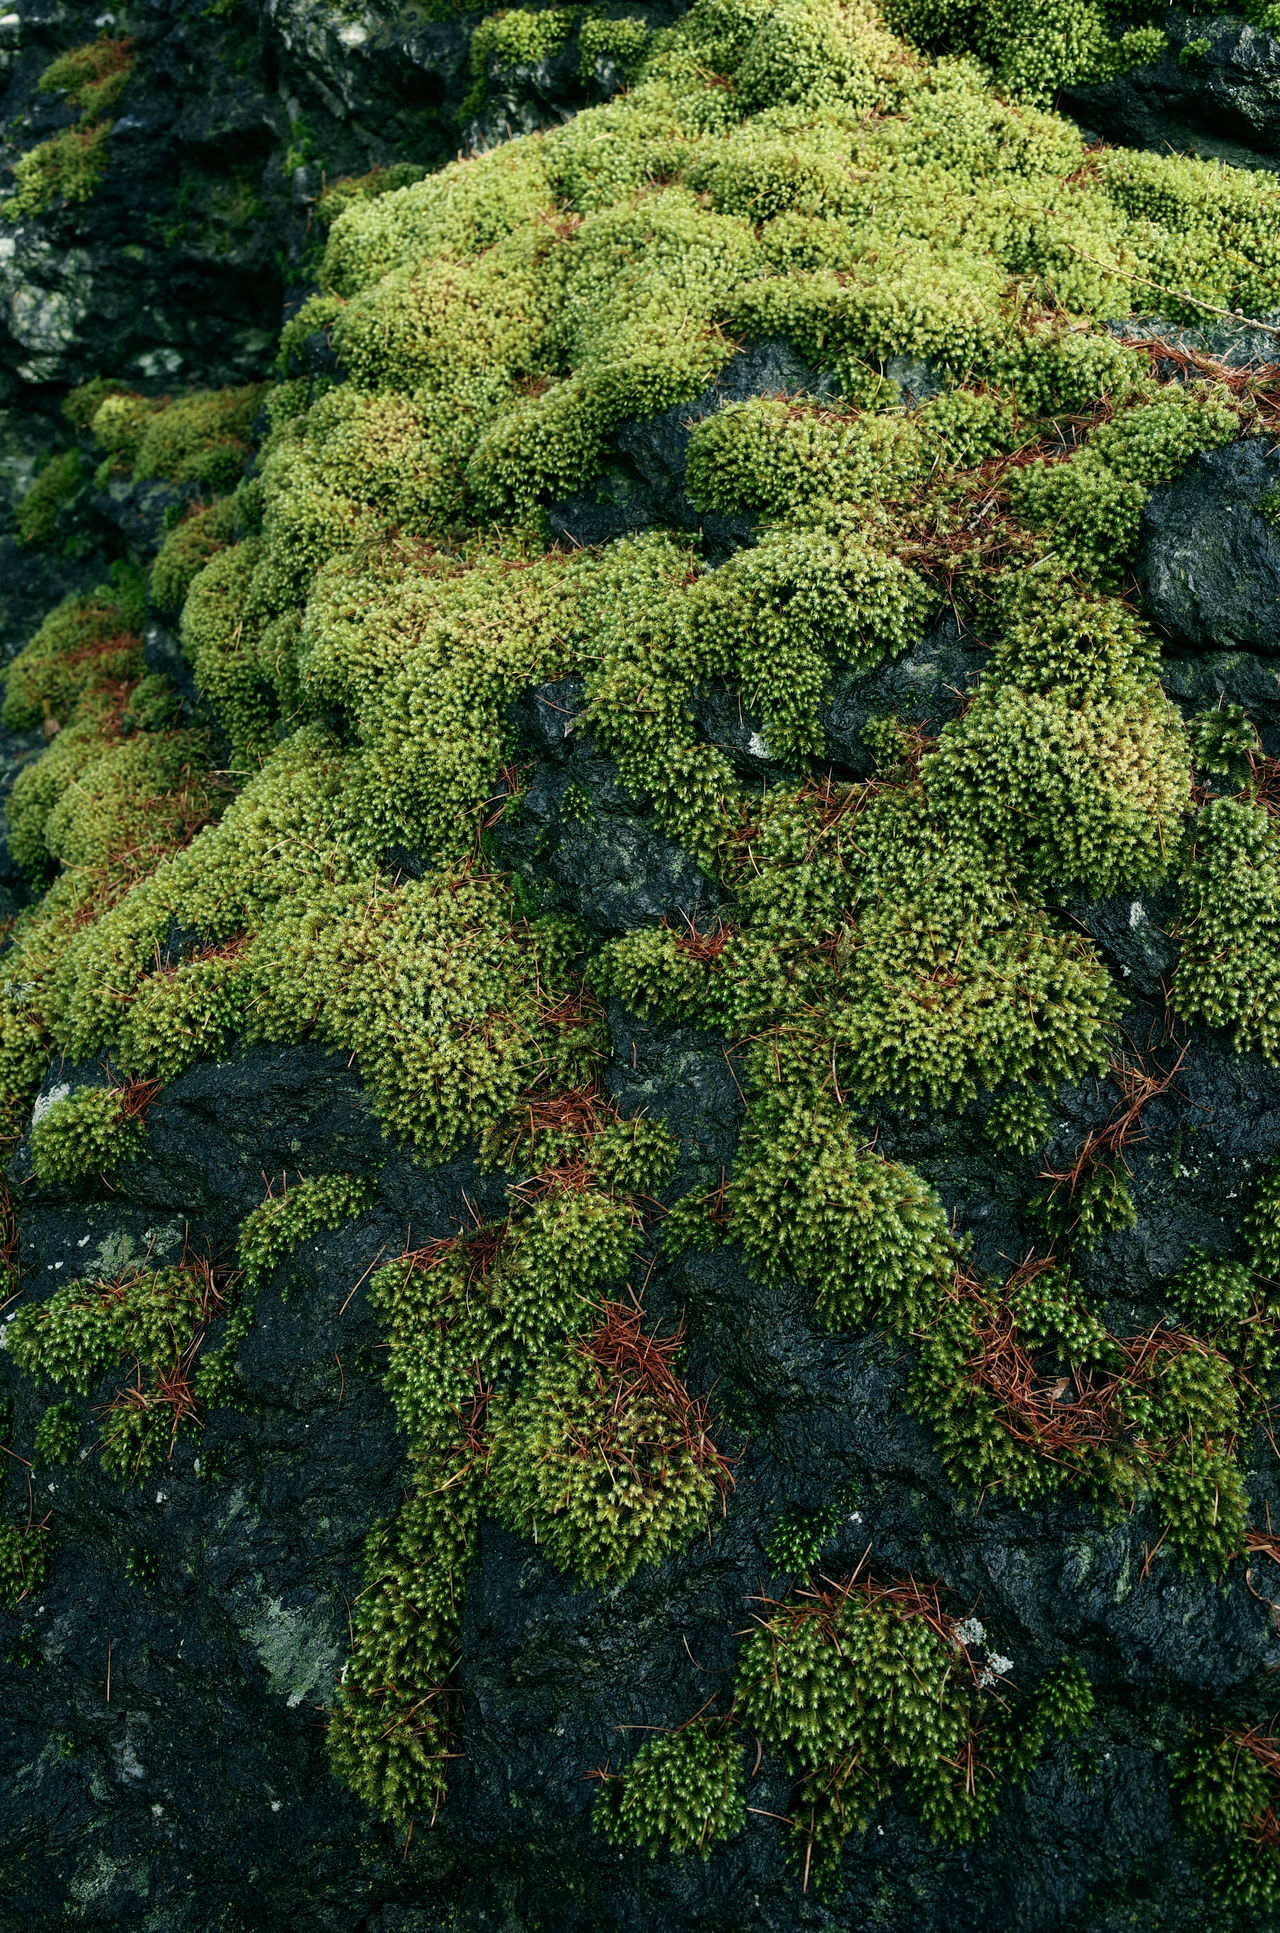 Backgrounds Beauty In Nature Close Up Close Up Nature Close-up Forest Freshness Green Color Growth Moss Mossporn Nature Outdoors Pattern Pattern Pieces Patterns Patterns In Nature Remote Location Rocks Rural Spring Vegetation Moss Close Up Vegetation Textures Moss & Lichen